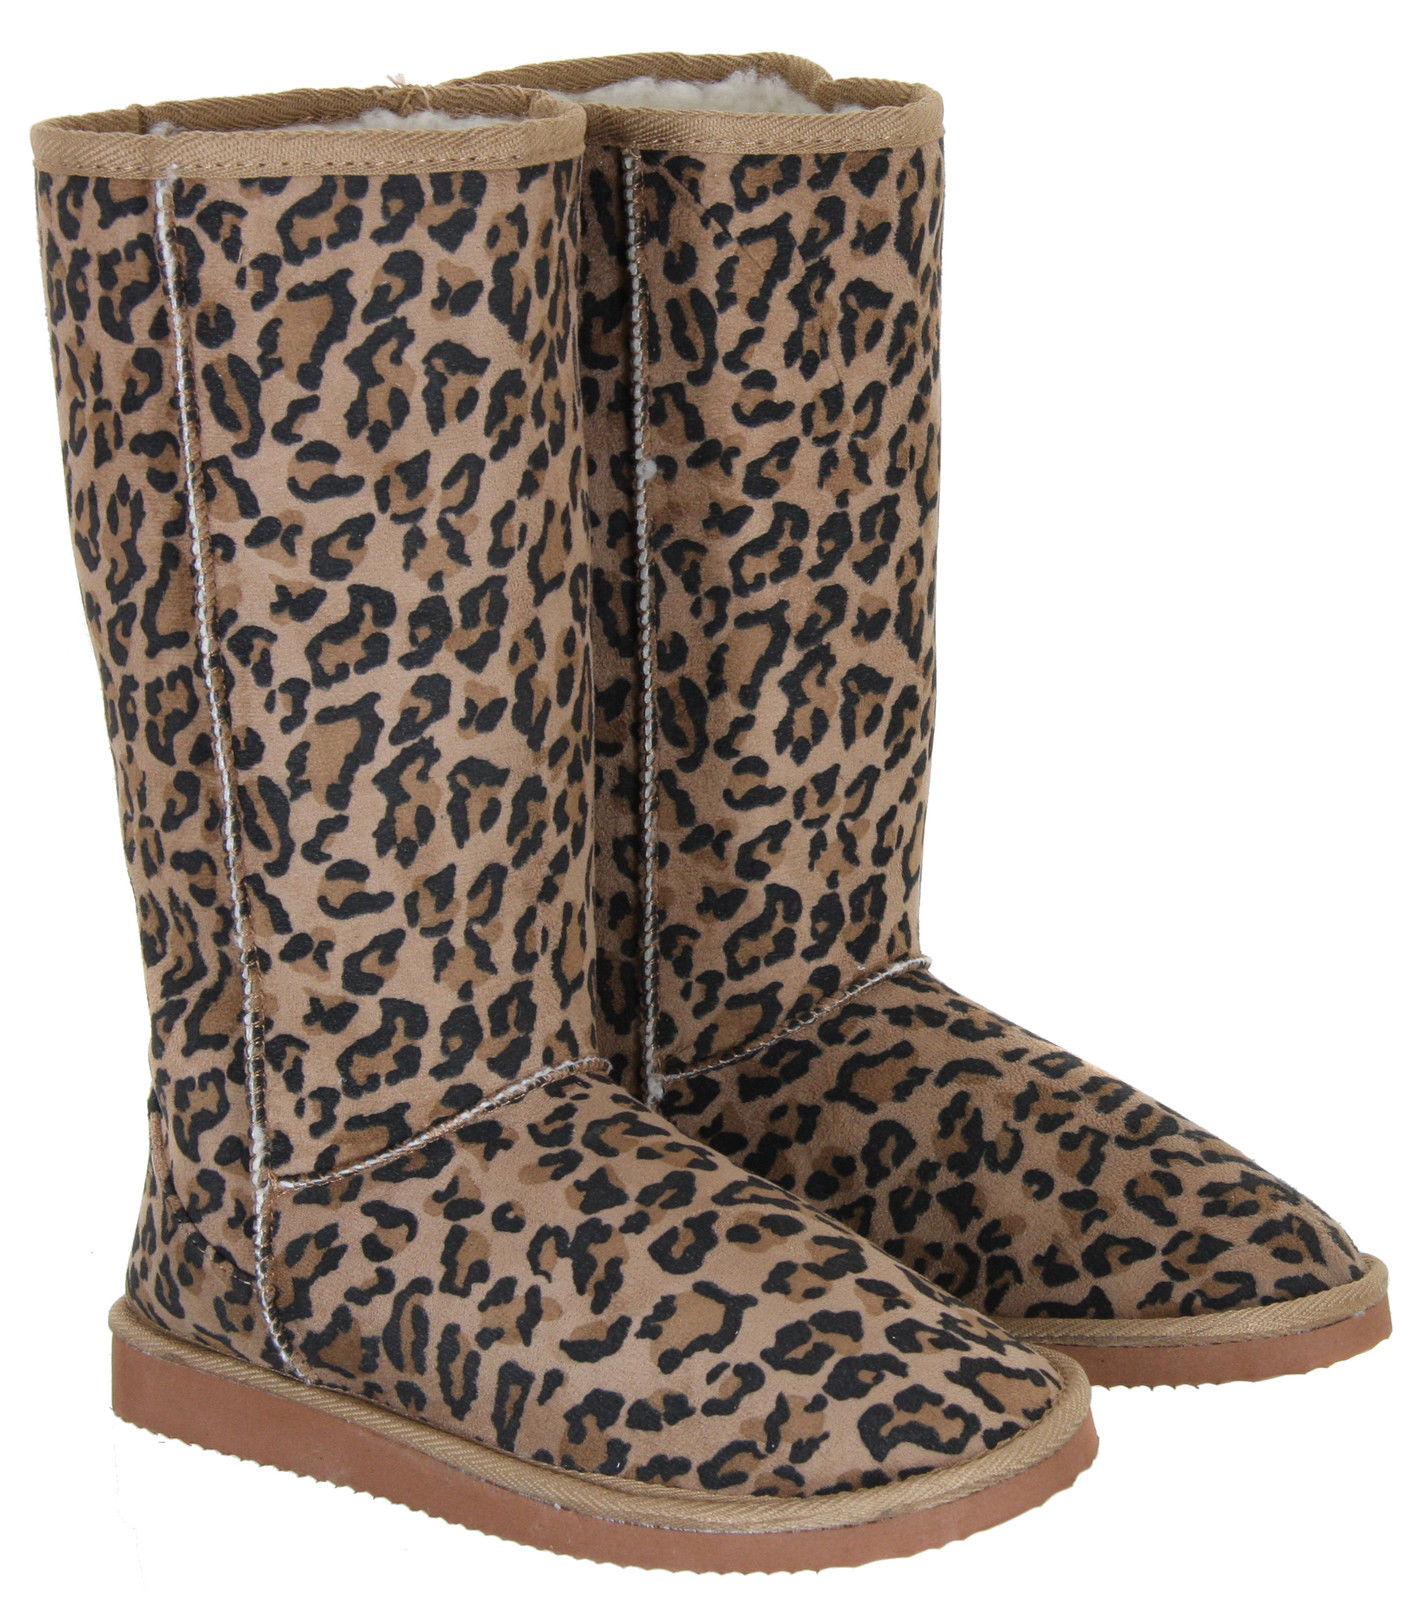 New-Ladies-Womens-Faux-Suede-Fur-Lined-Leopard-Animal-Print-Boots-Sizes-3-8